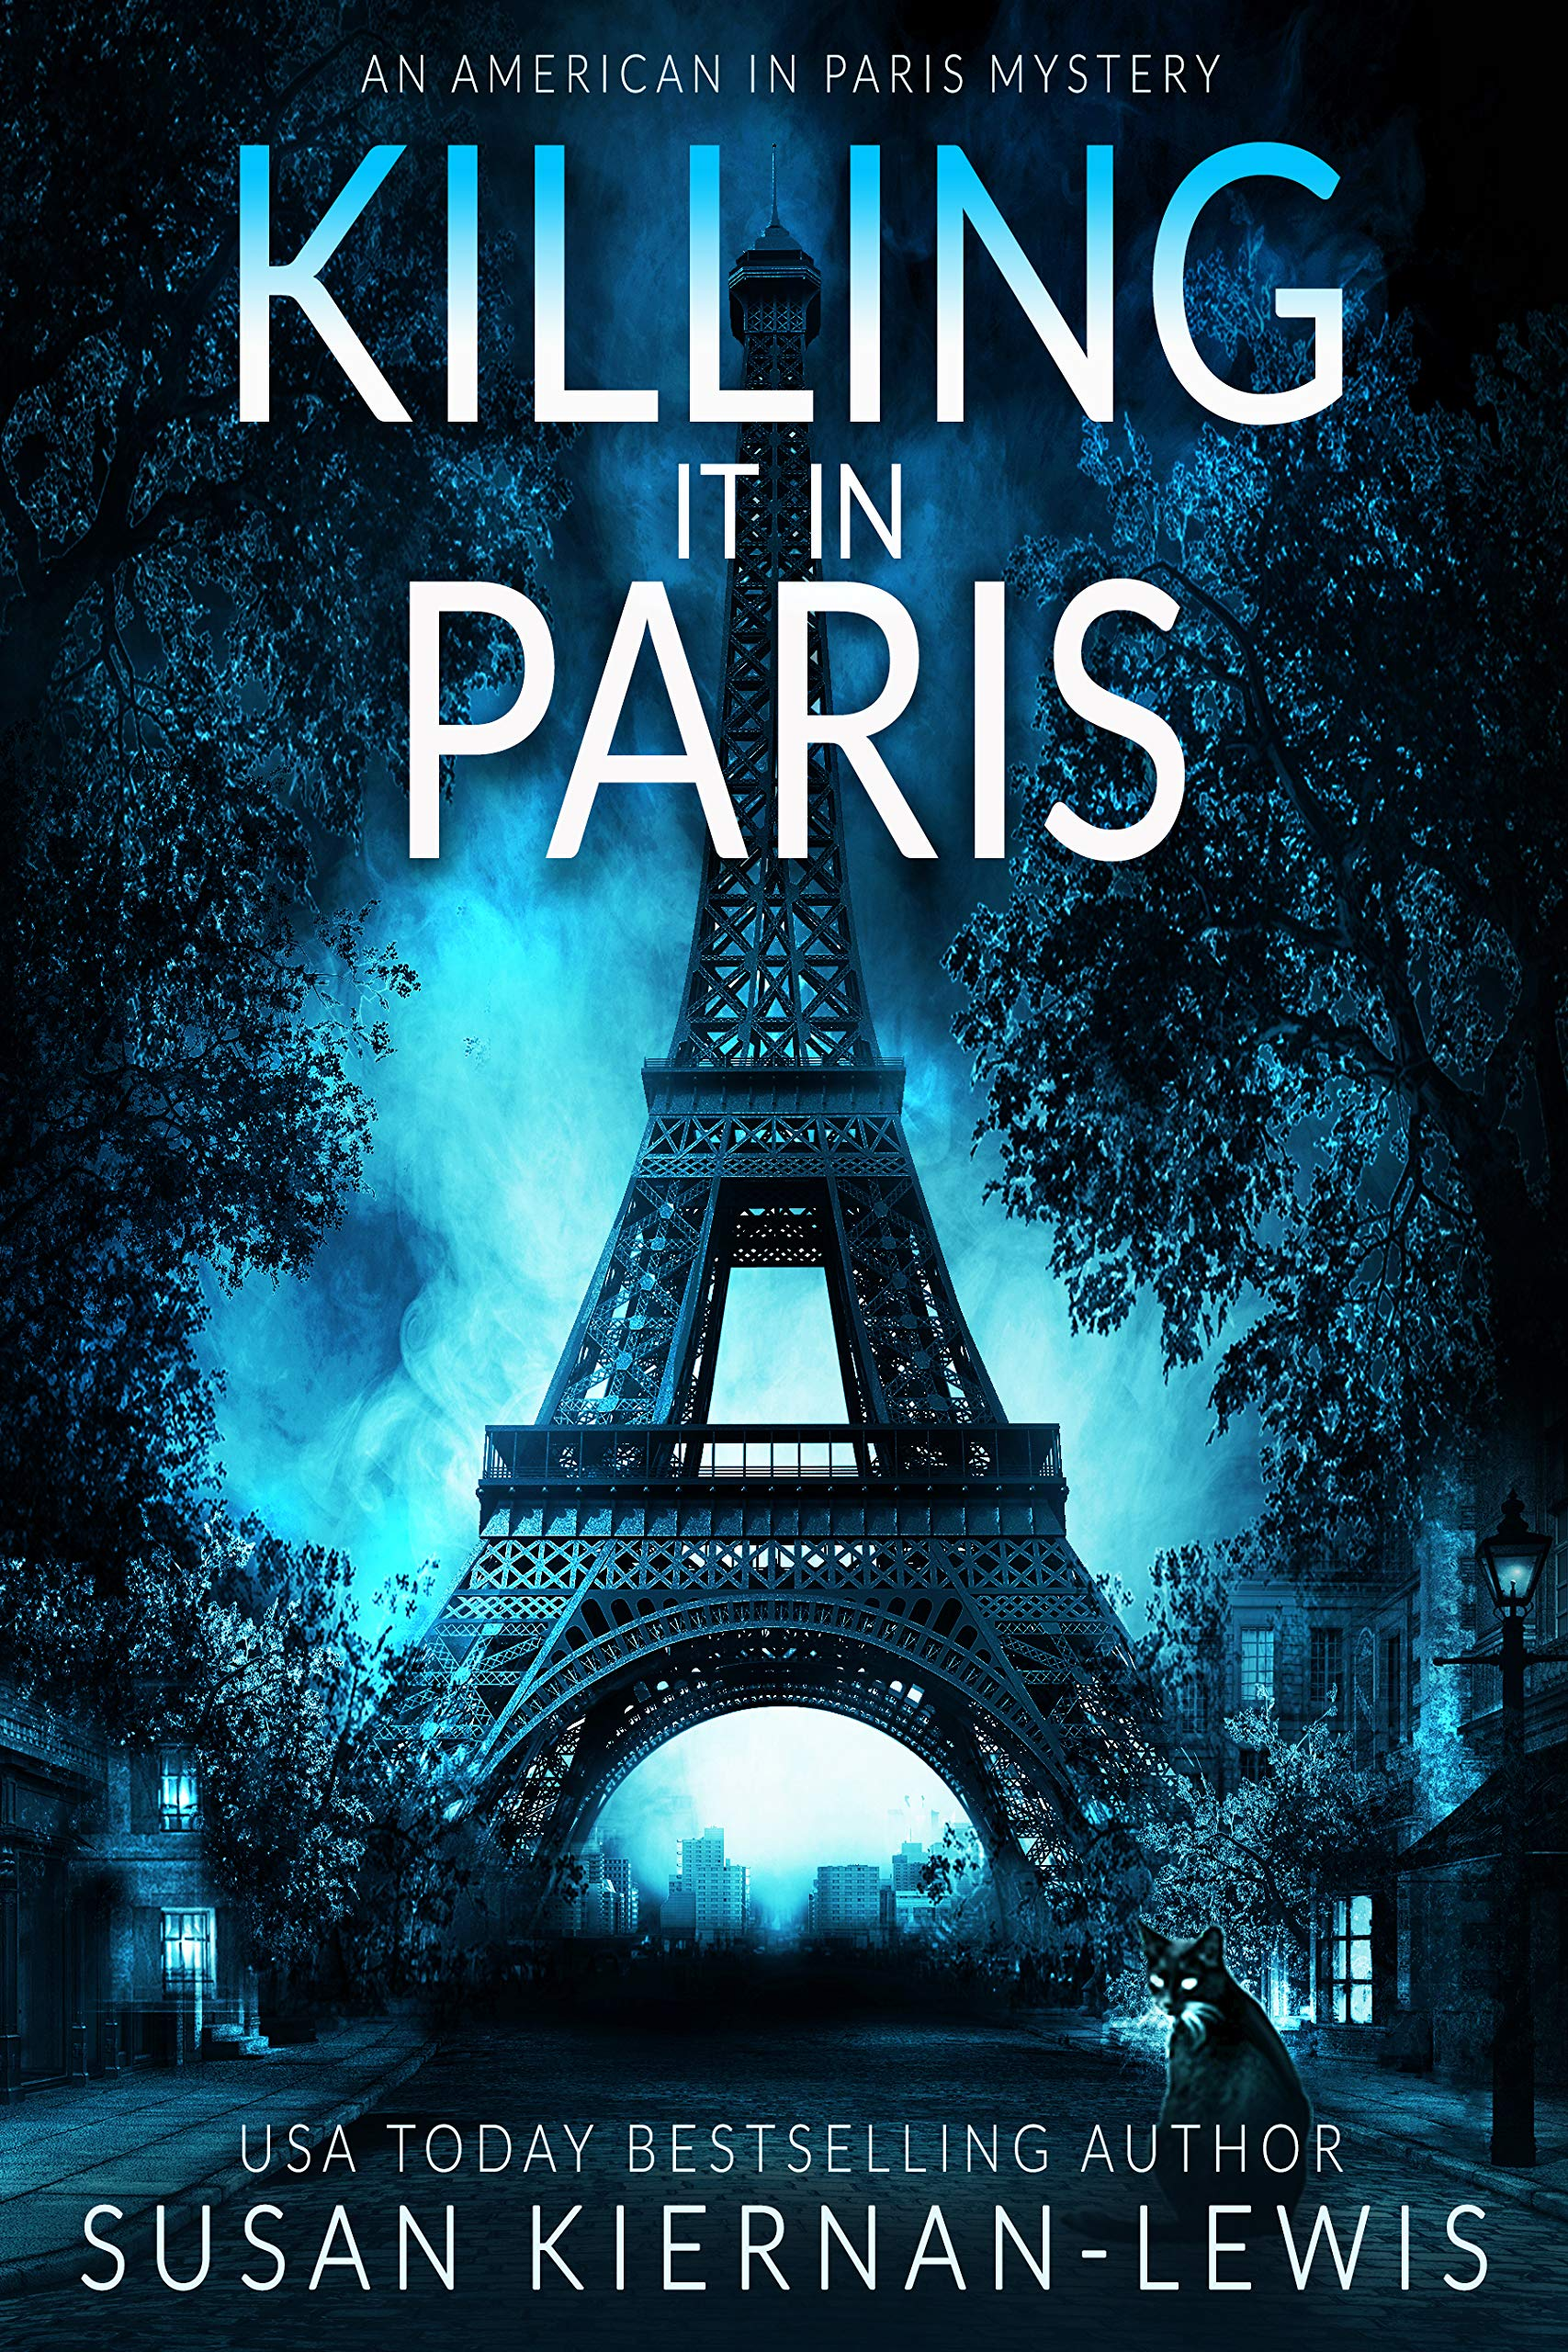 Killing it in Paris: A heart-stopping thriller mystery set in Paris (An American in Paris Book 5)